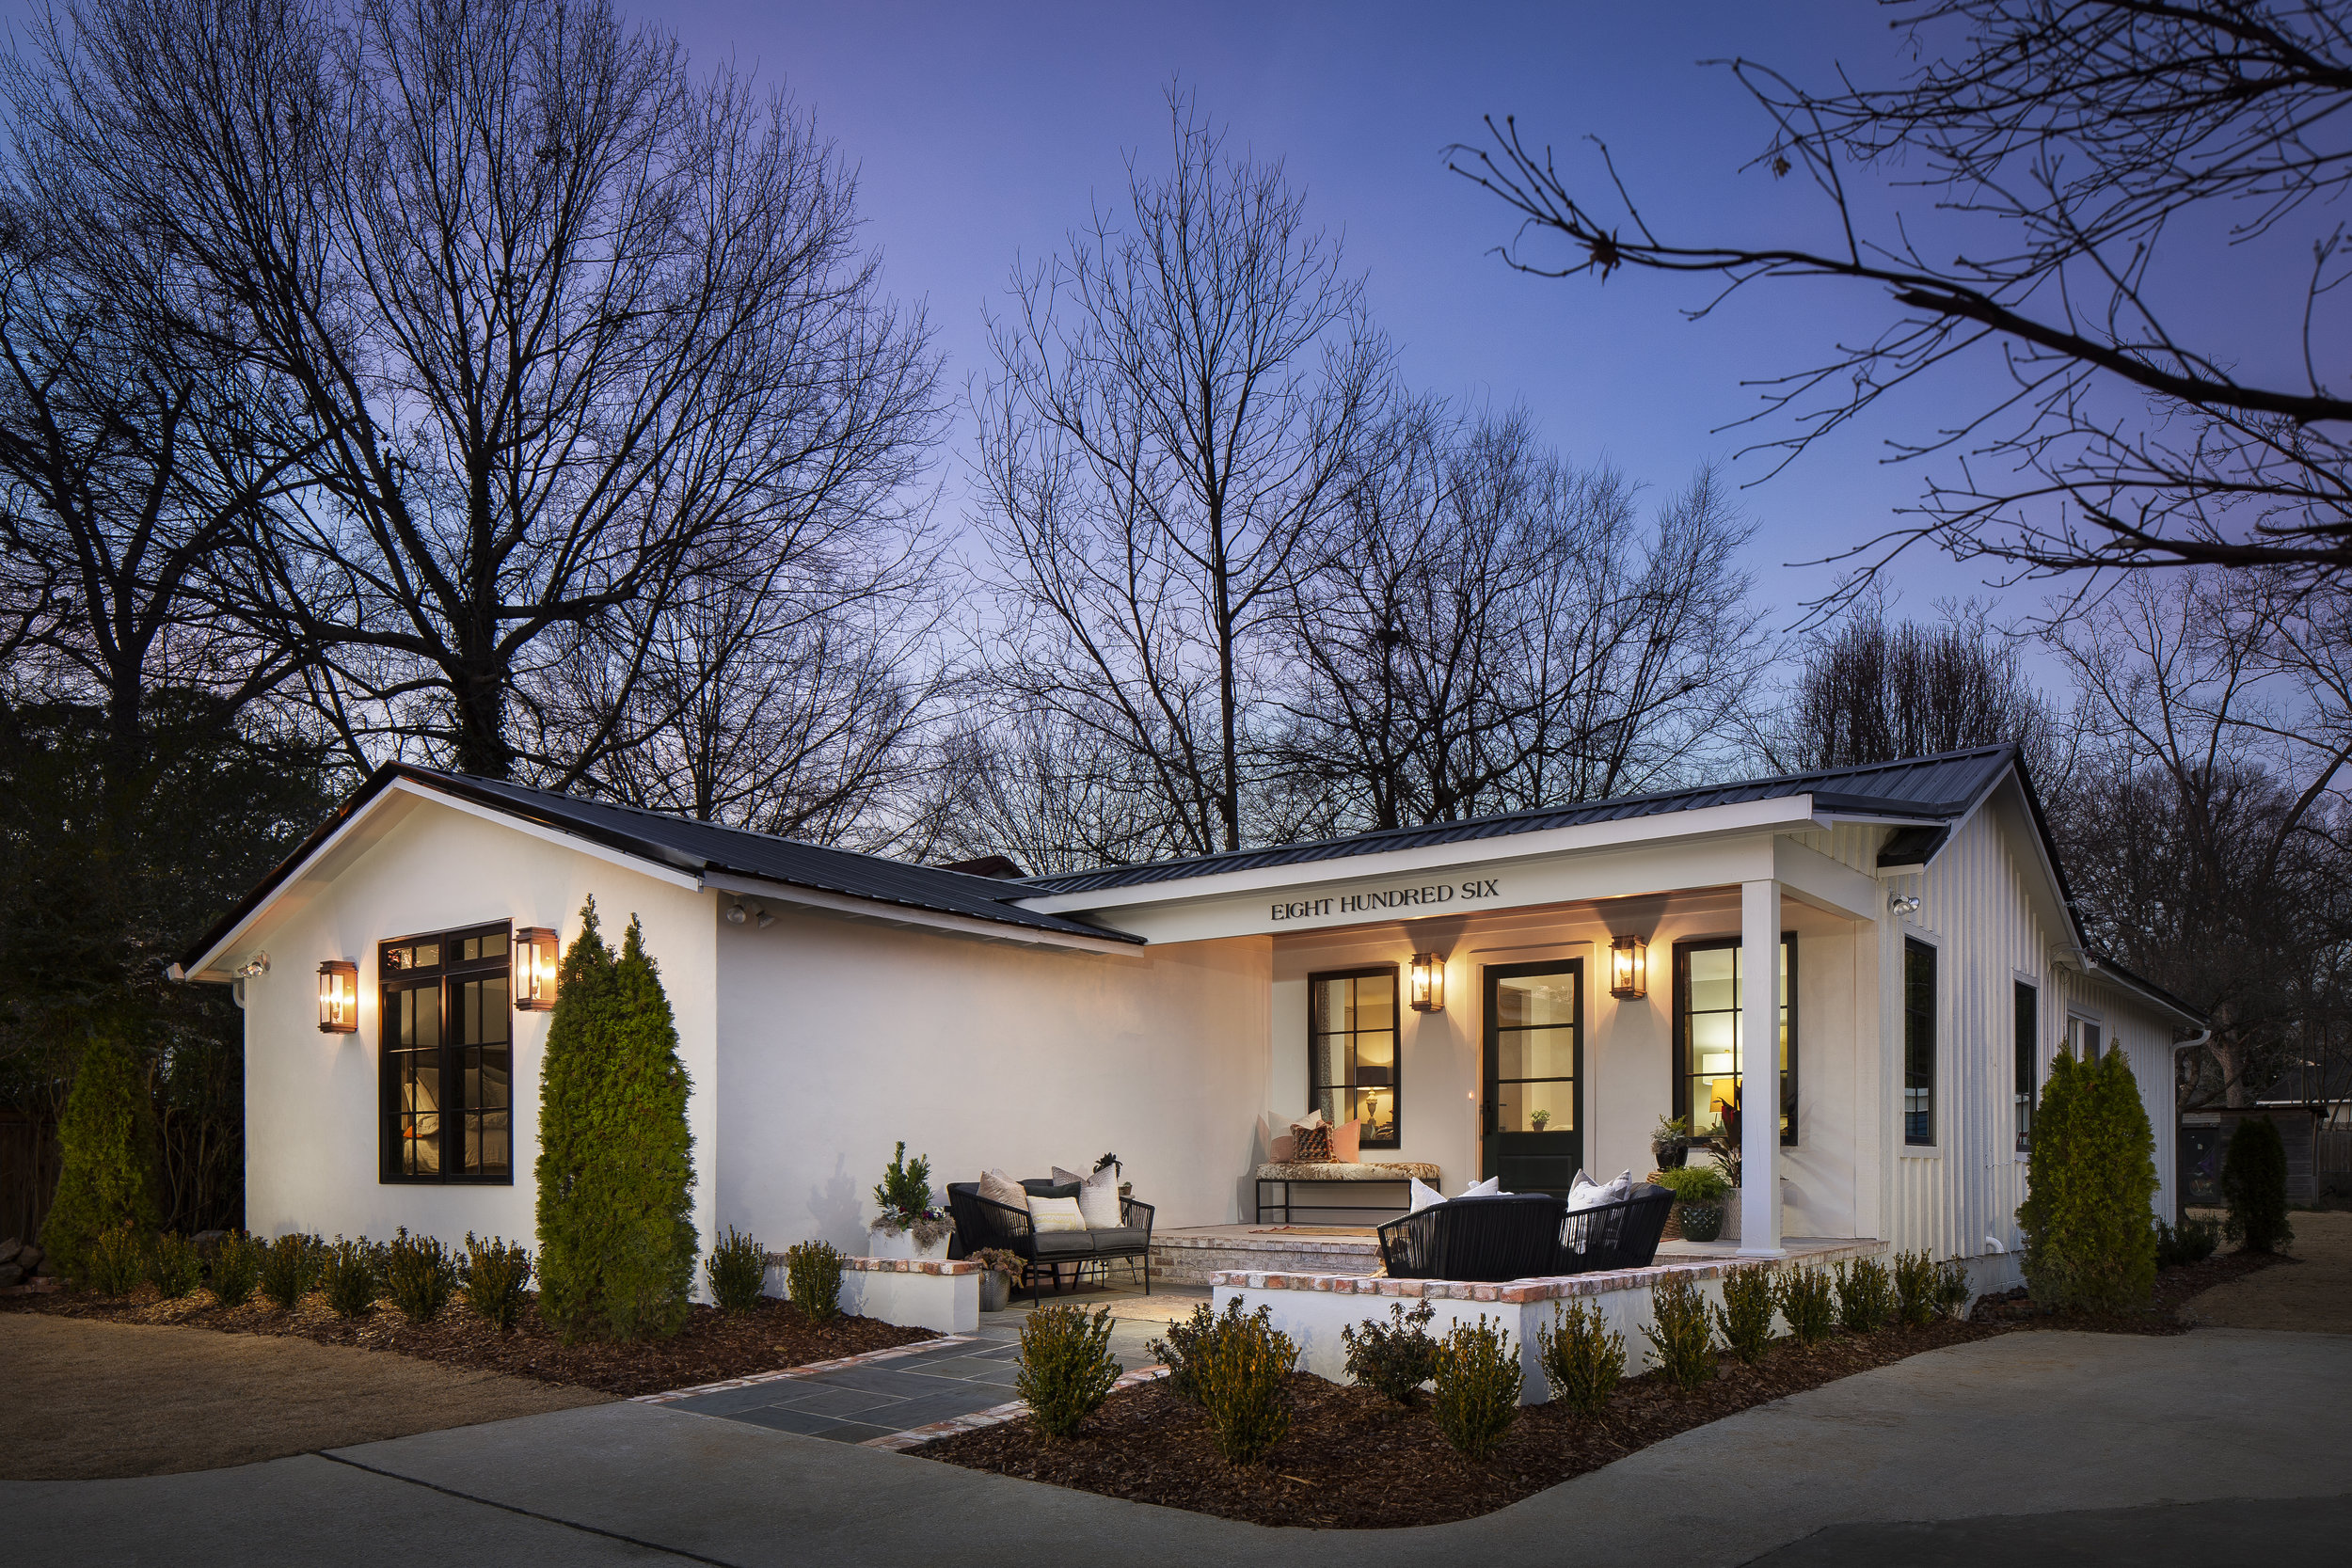 Project Carr - Remodeled home in Homewood, AL photographed for Willow Homes, Willow Design Studios, and Triton Stone Group of Birmingham